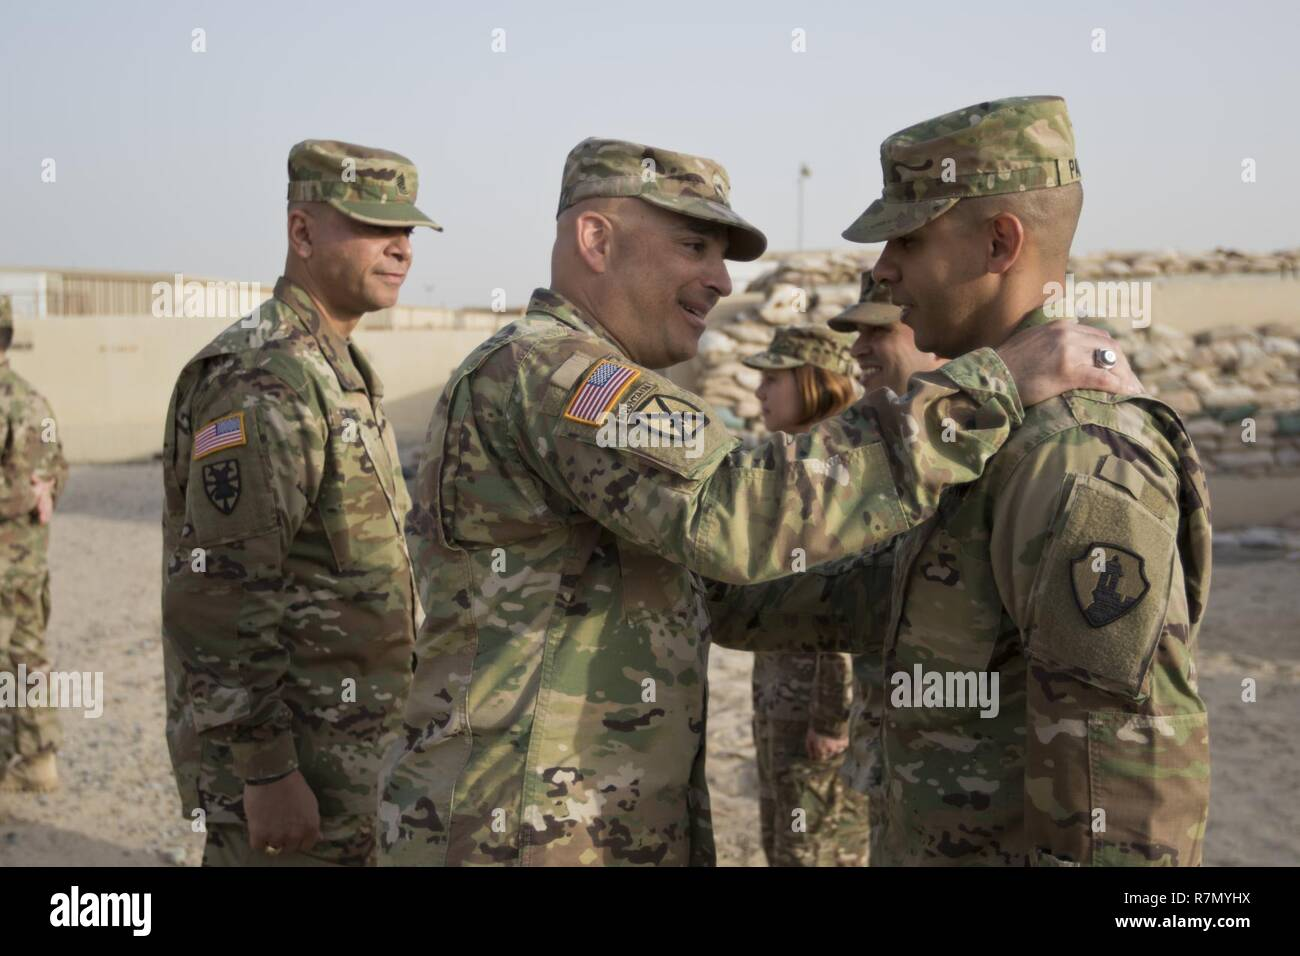 Brig. Gen. Alberto Rosende, commanding general of the 1st Mission Support Command, an Army Reserve unit based out of Fort Buchanan, Puerto Rico, slaps the Garita patch on a Soldier during a patching ceremony for the 246th Quartermaster Company (Mortuary Affairs) at Camp Arifjan, Kuwait, on Mar. 20, 2017. - Stock Image